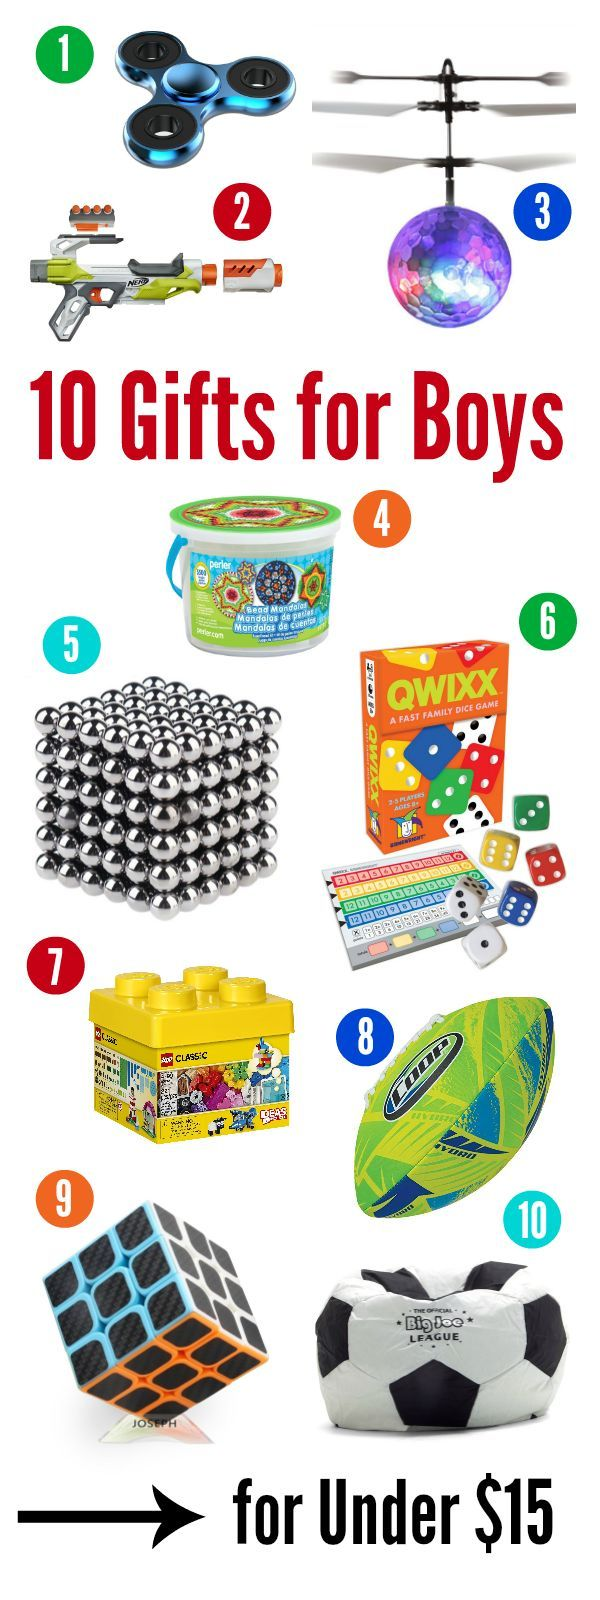 10 Best Gifts for a 10 Year Old Boy for Under $15 | Gift Ideas ...